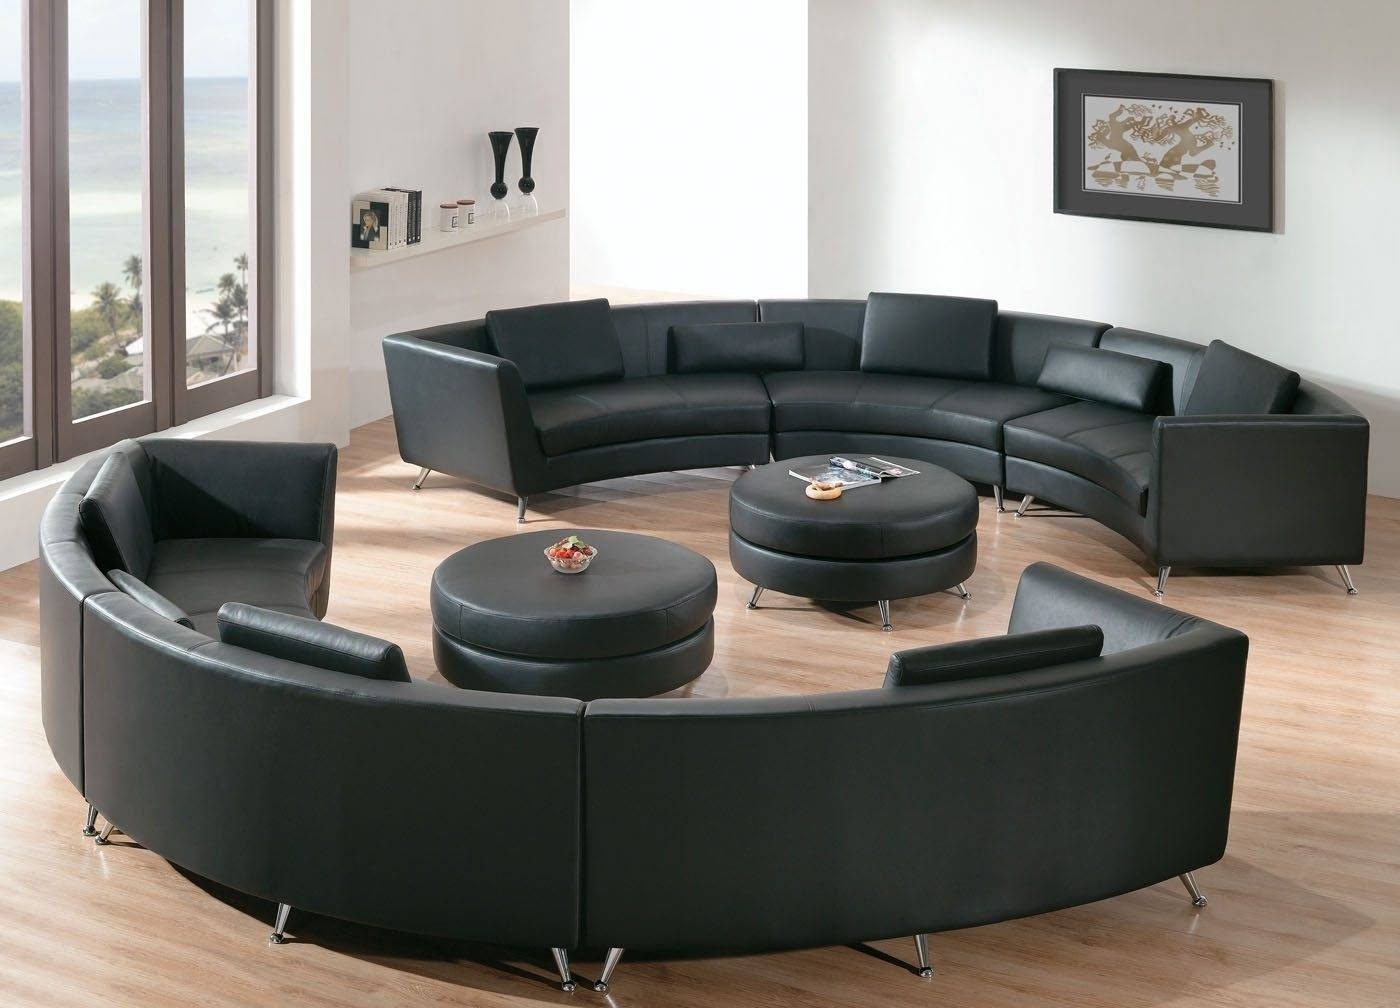 Semi-Circular-Sectional-Sofa-Has-One-Of-The-Best-Kind-Of-Other-Is pertaining to Semicircular Sofa (Image 15 of 30)